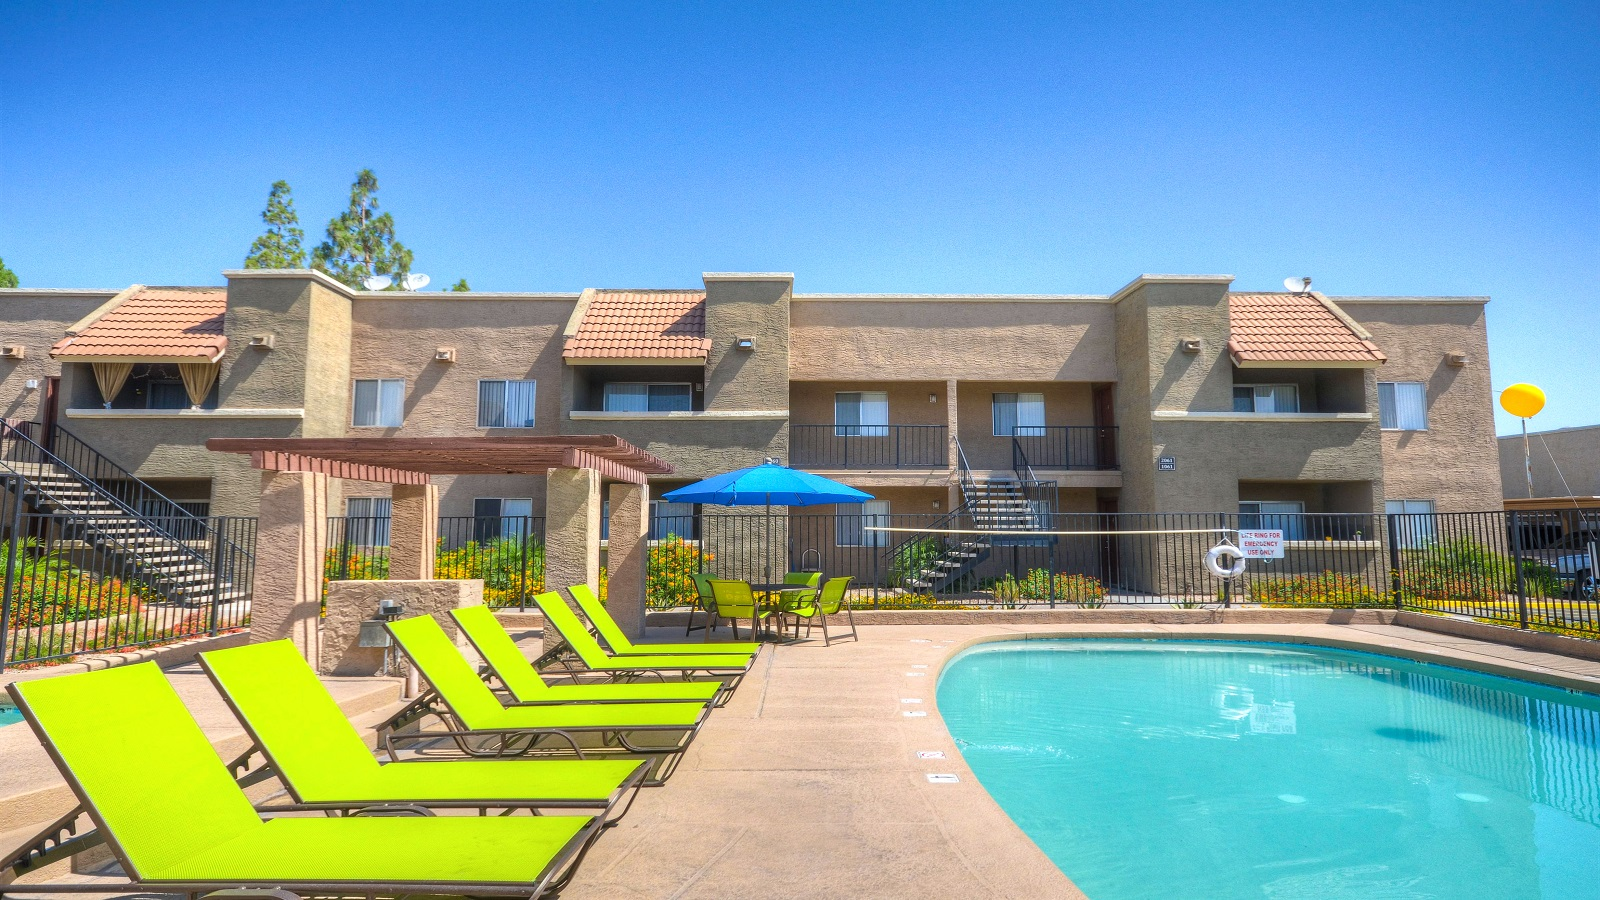 5631 West Colter Street Glendale, AZ 85301 | 304 Units | Built in 1984 | $25,000,000 | $82,237 Per Unit | $94.67 Per SF